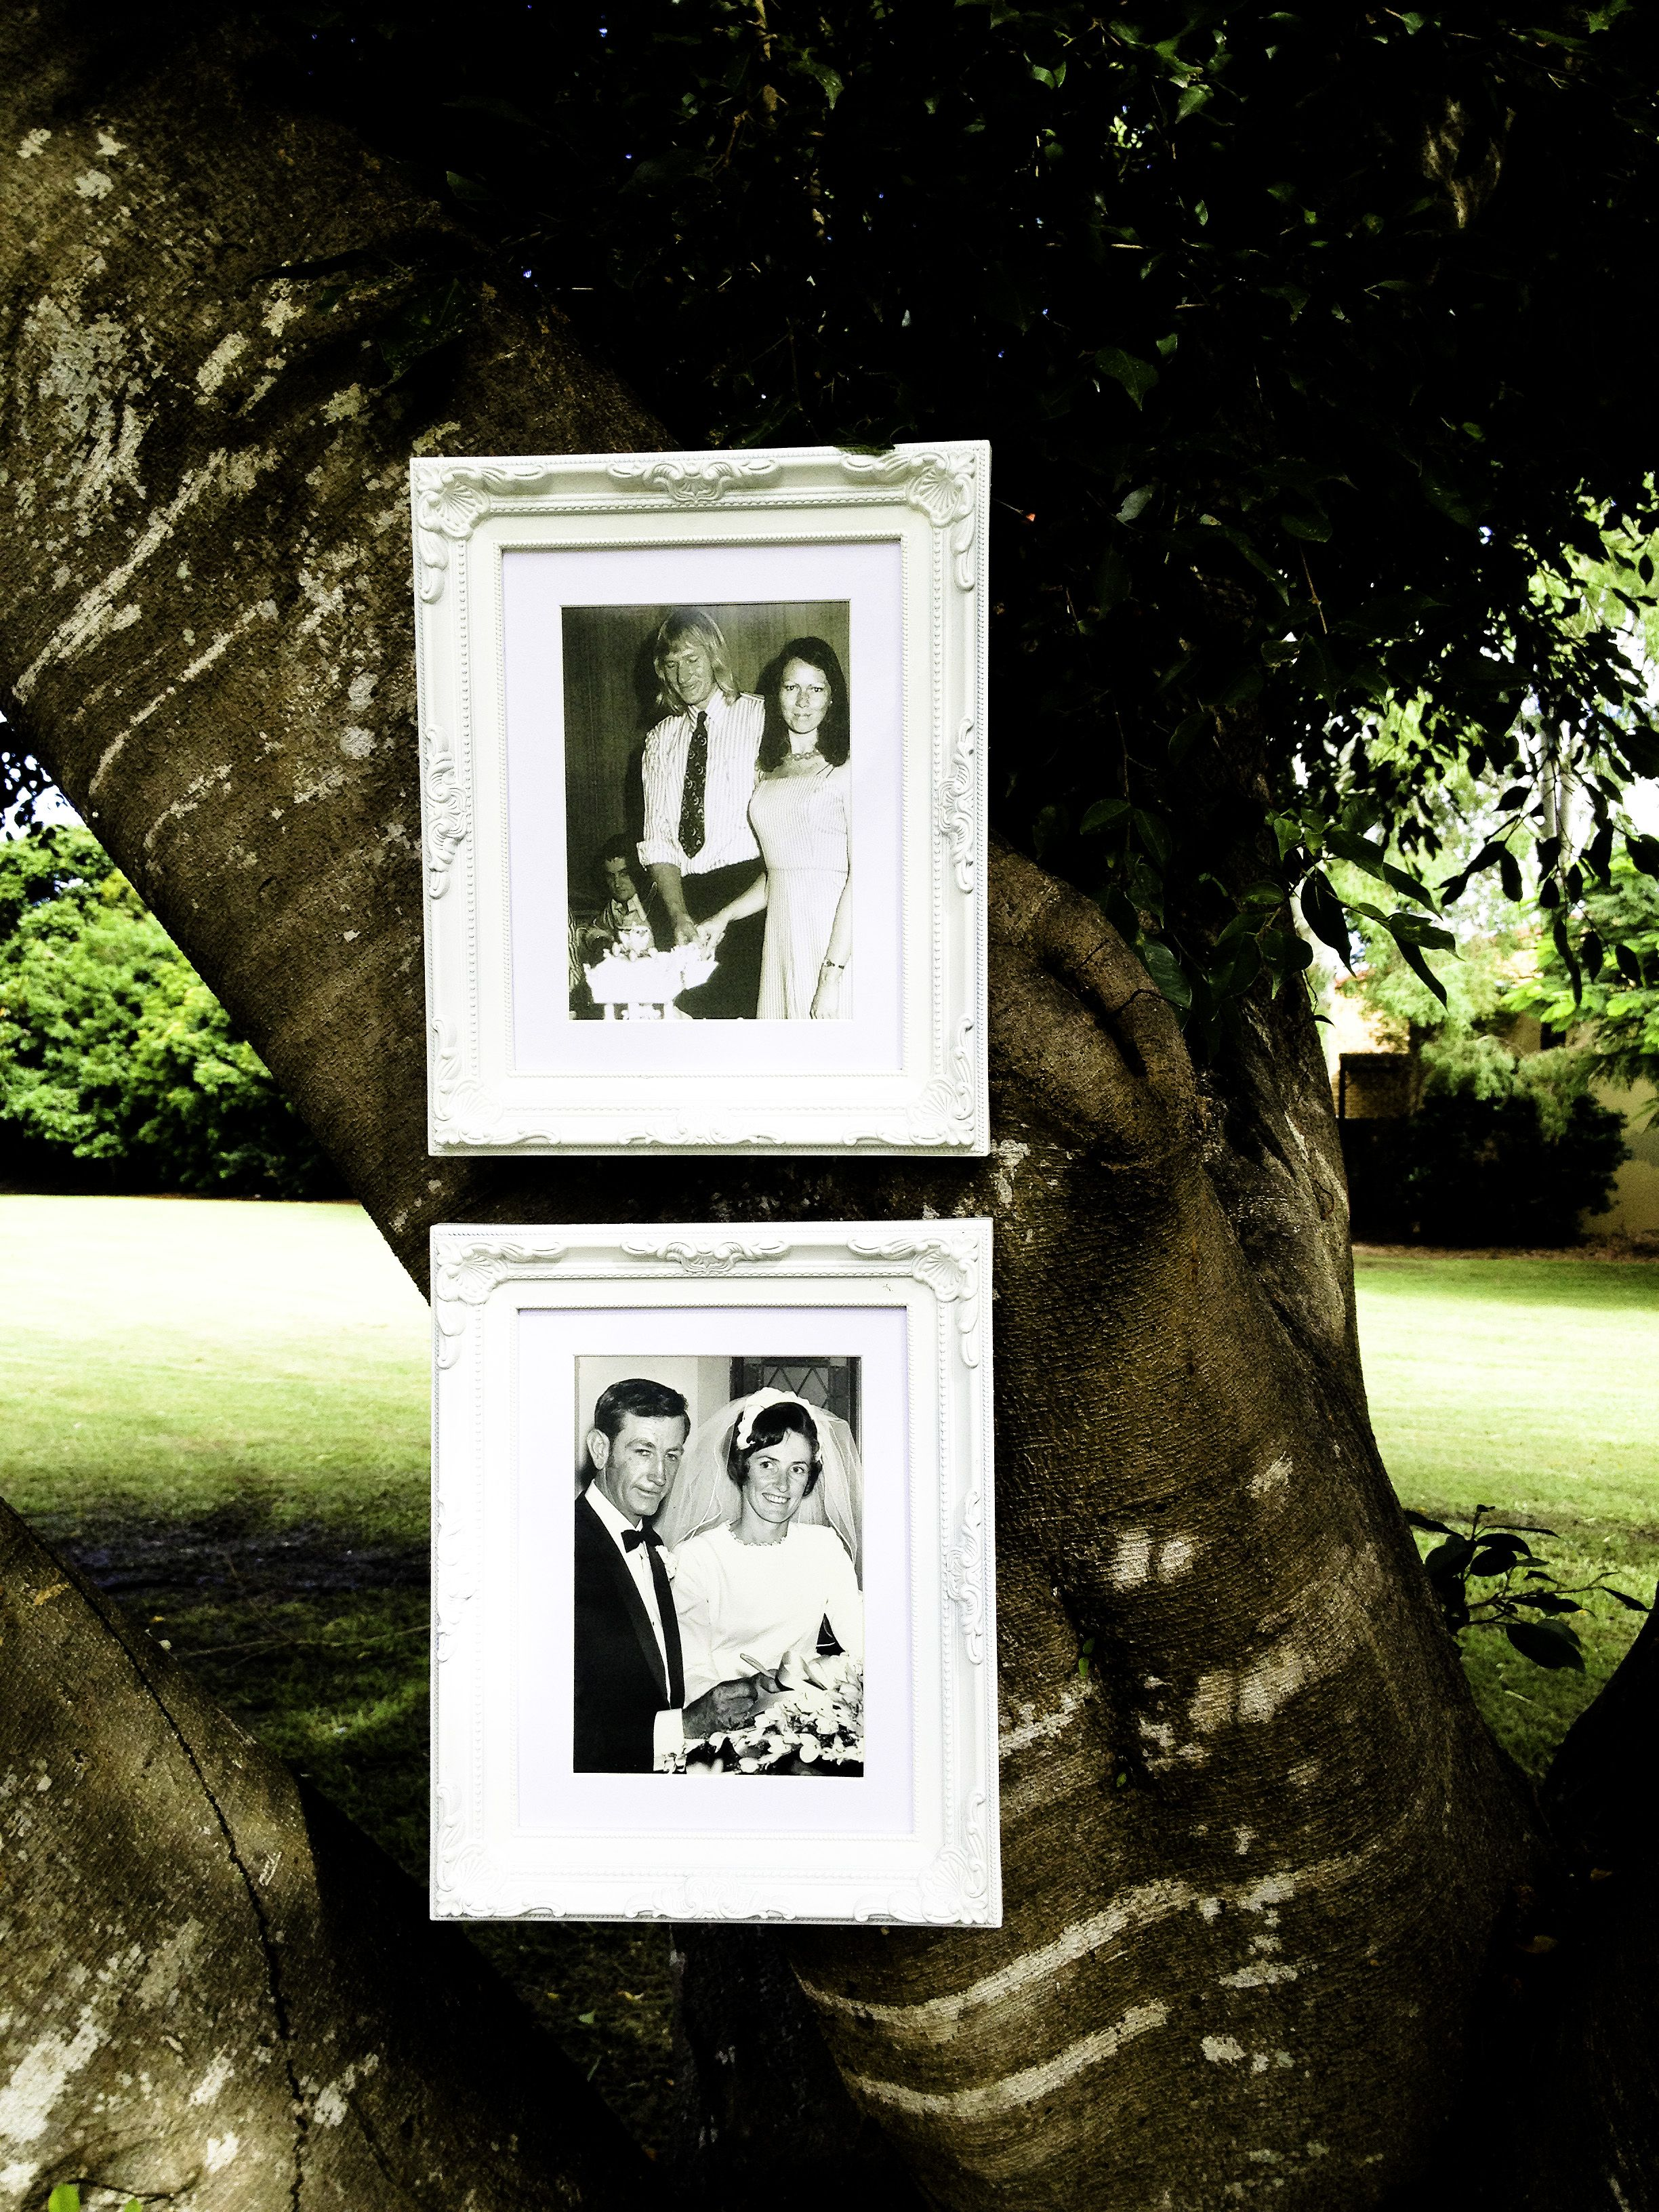 Hanging two frames with your parents wedding pics at your ceremony